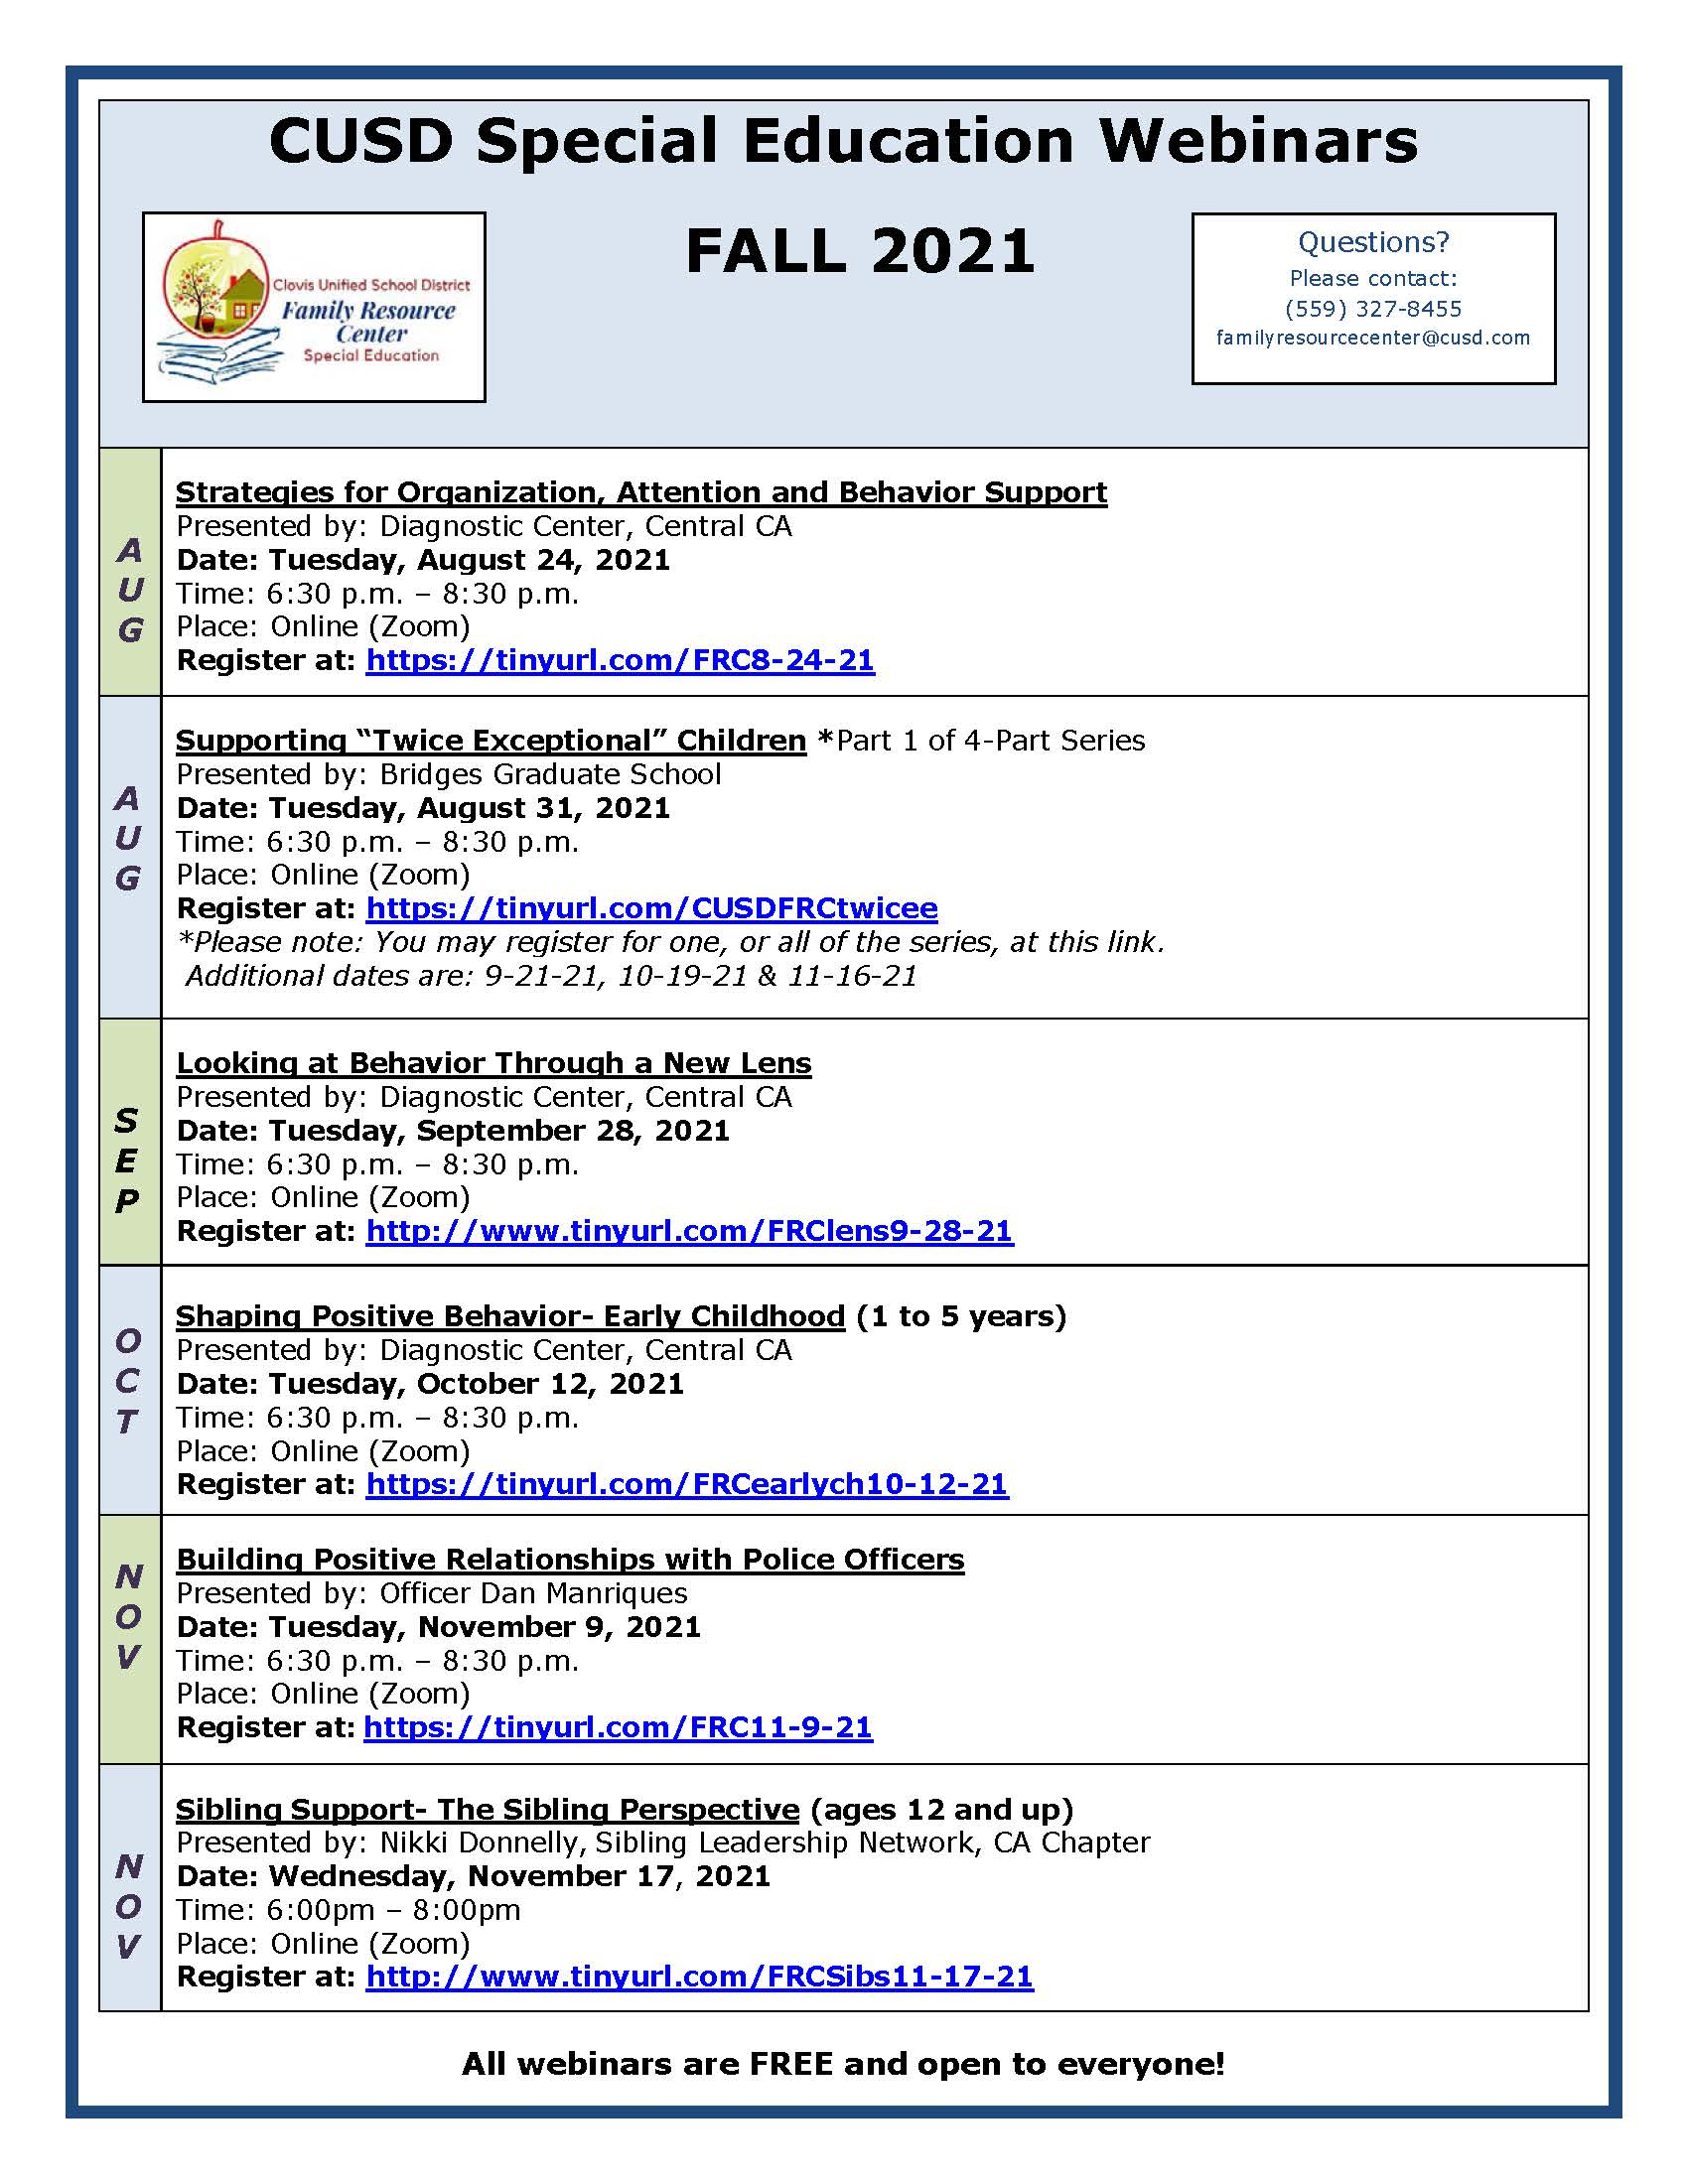 Picture of CUSD Family Resource Center Fall calendar. Download RTF for details.